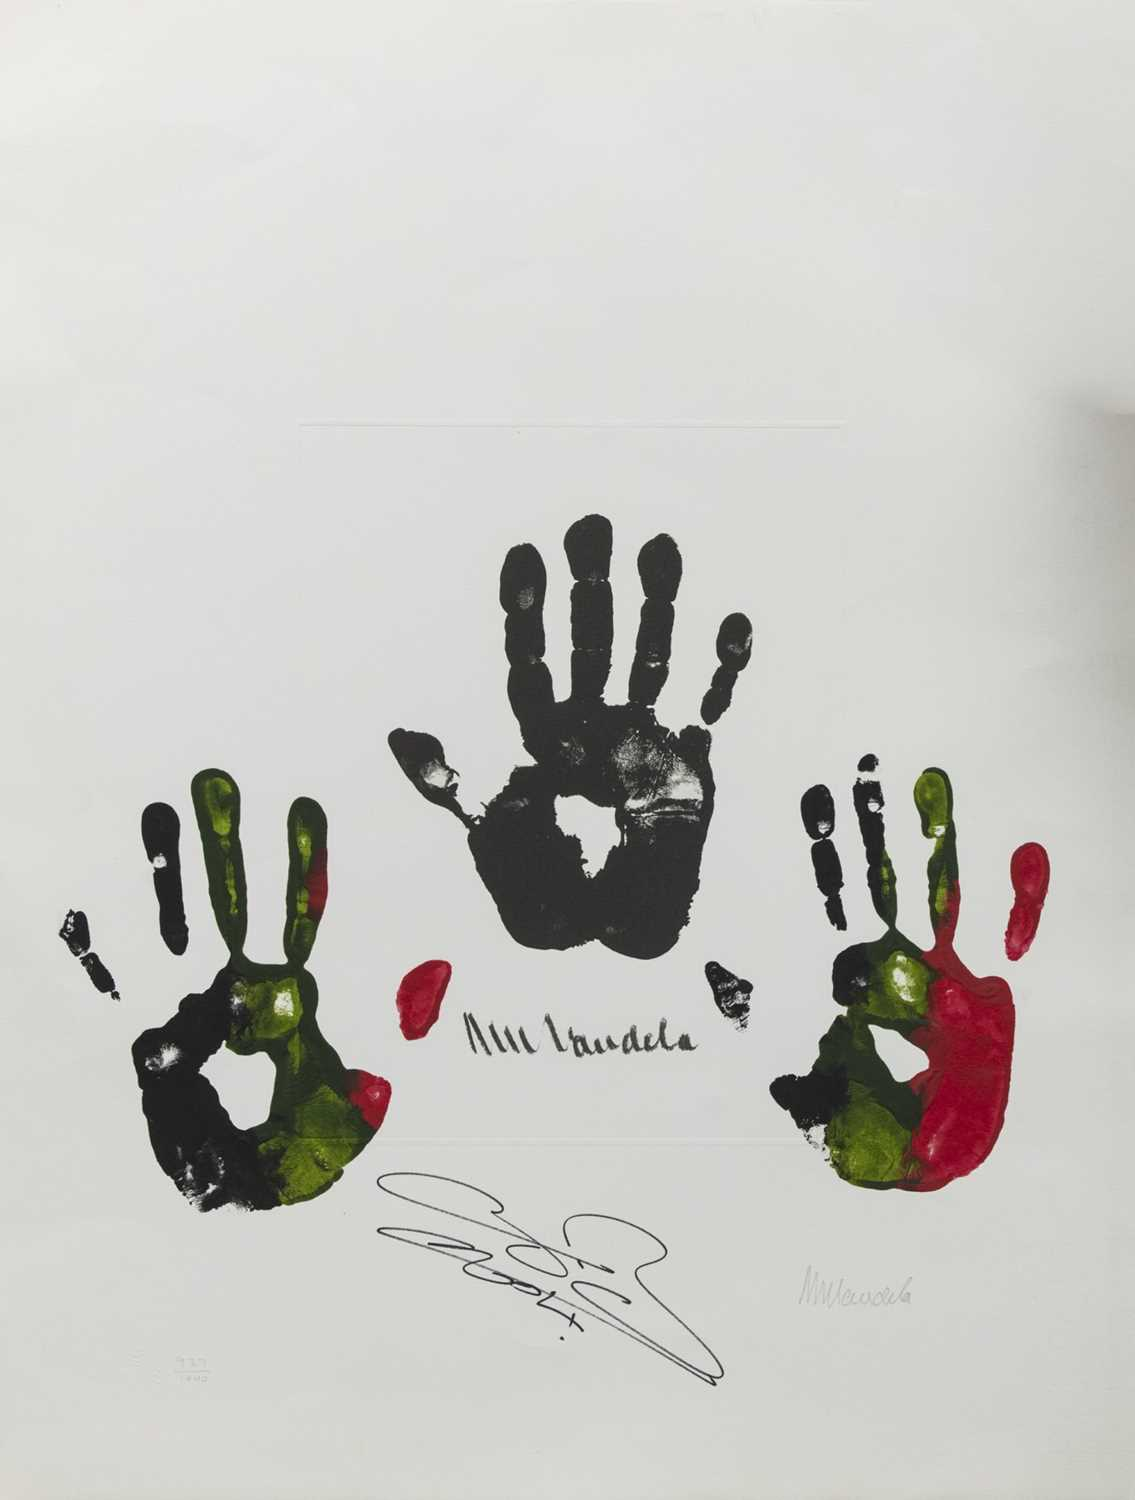 Lot 104 - HAND OF AFRICA, A LIMITED EDITION PRINT WITH ORIGINAL HANDPRINTS BY NELSON MANDELA